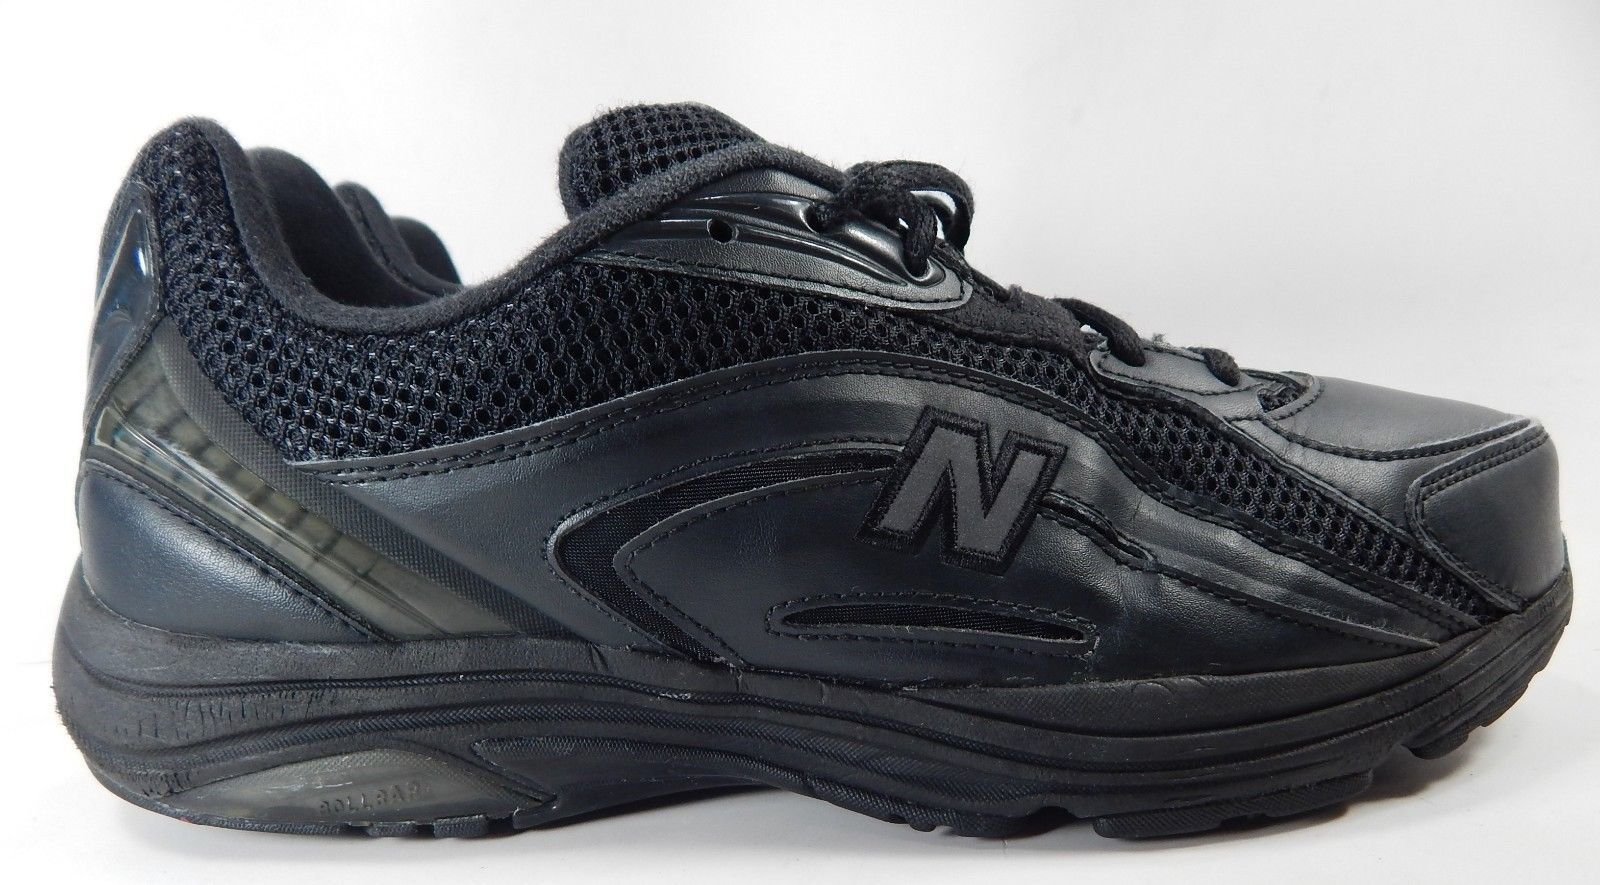 New Balance 846 Size US 9 2E WIDE EU 42.5 Men's Walking Shoes Black MW846BK